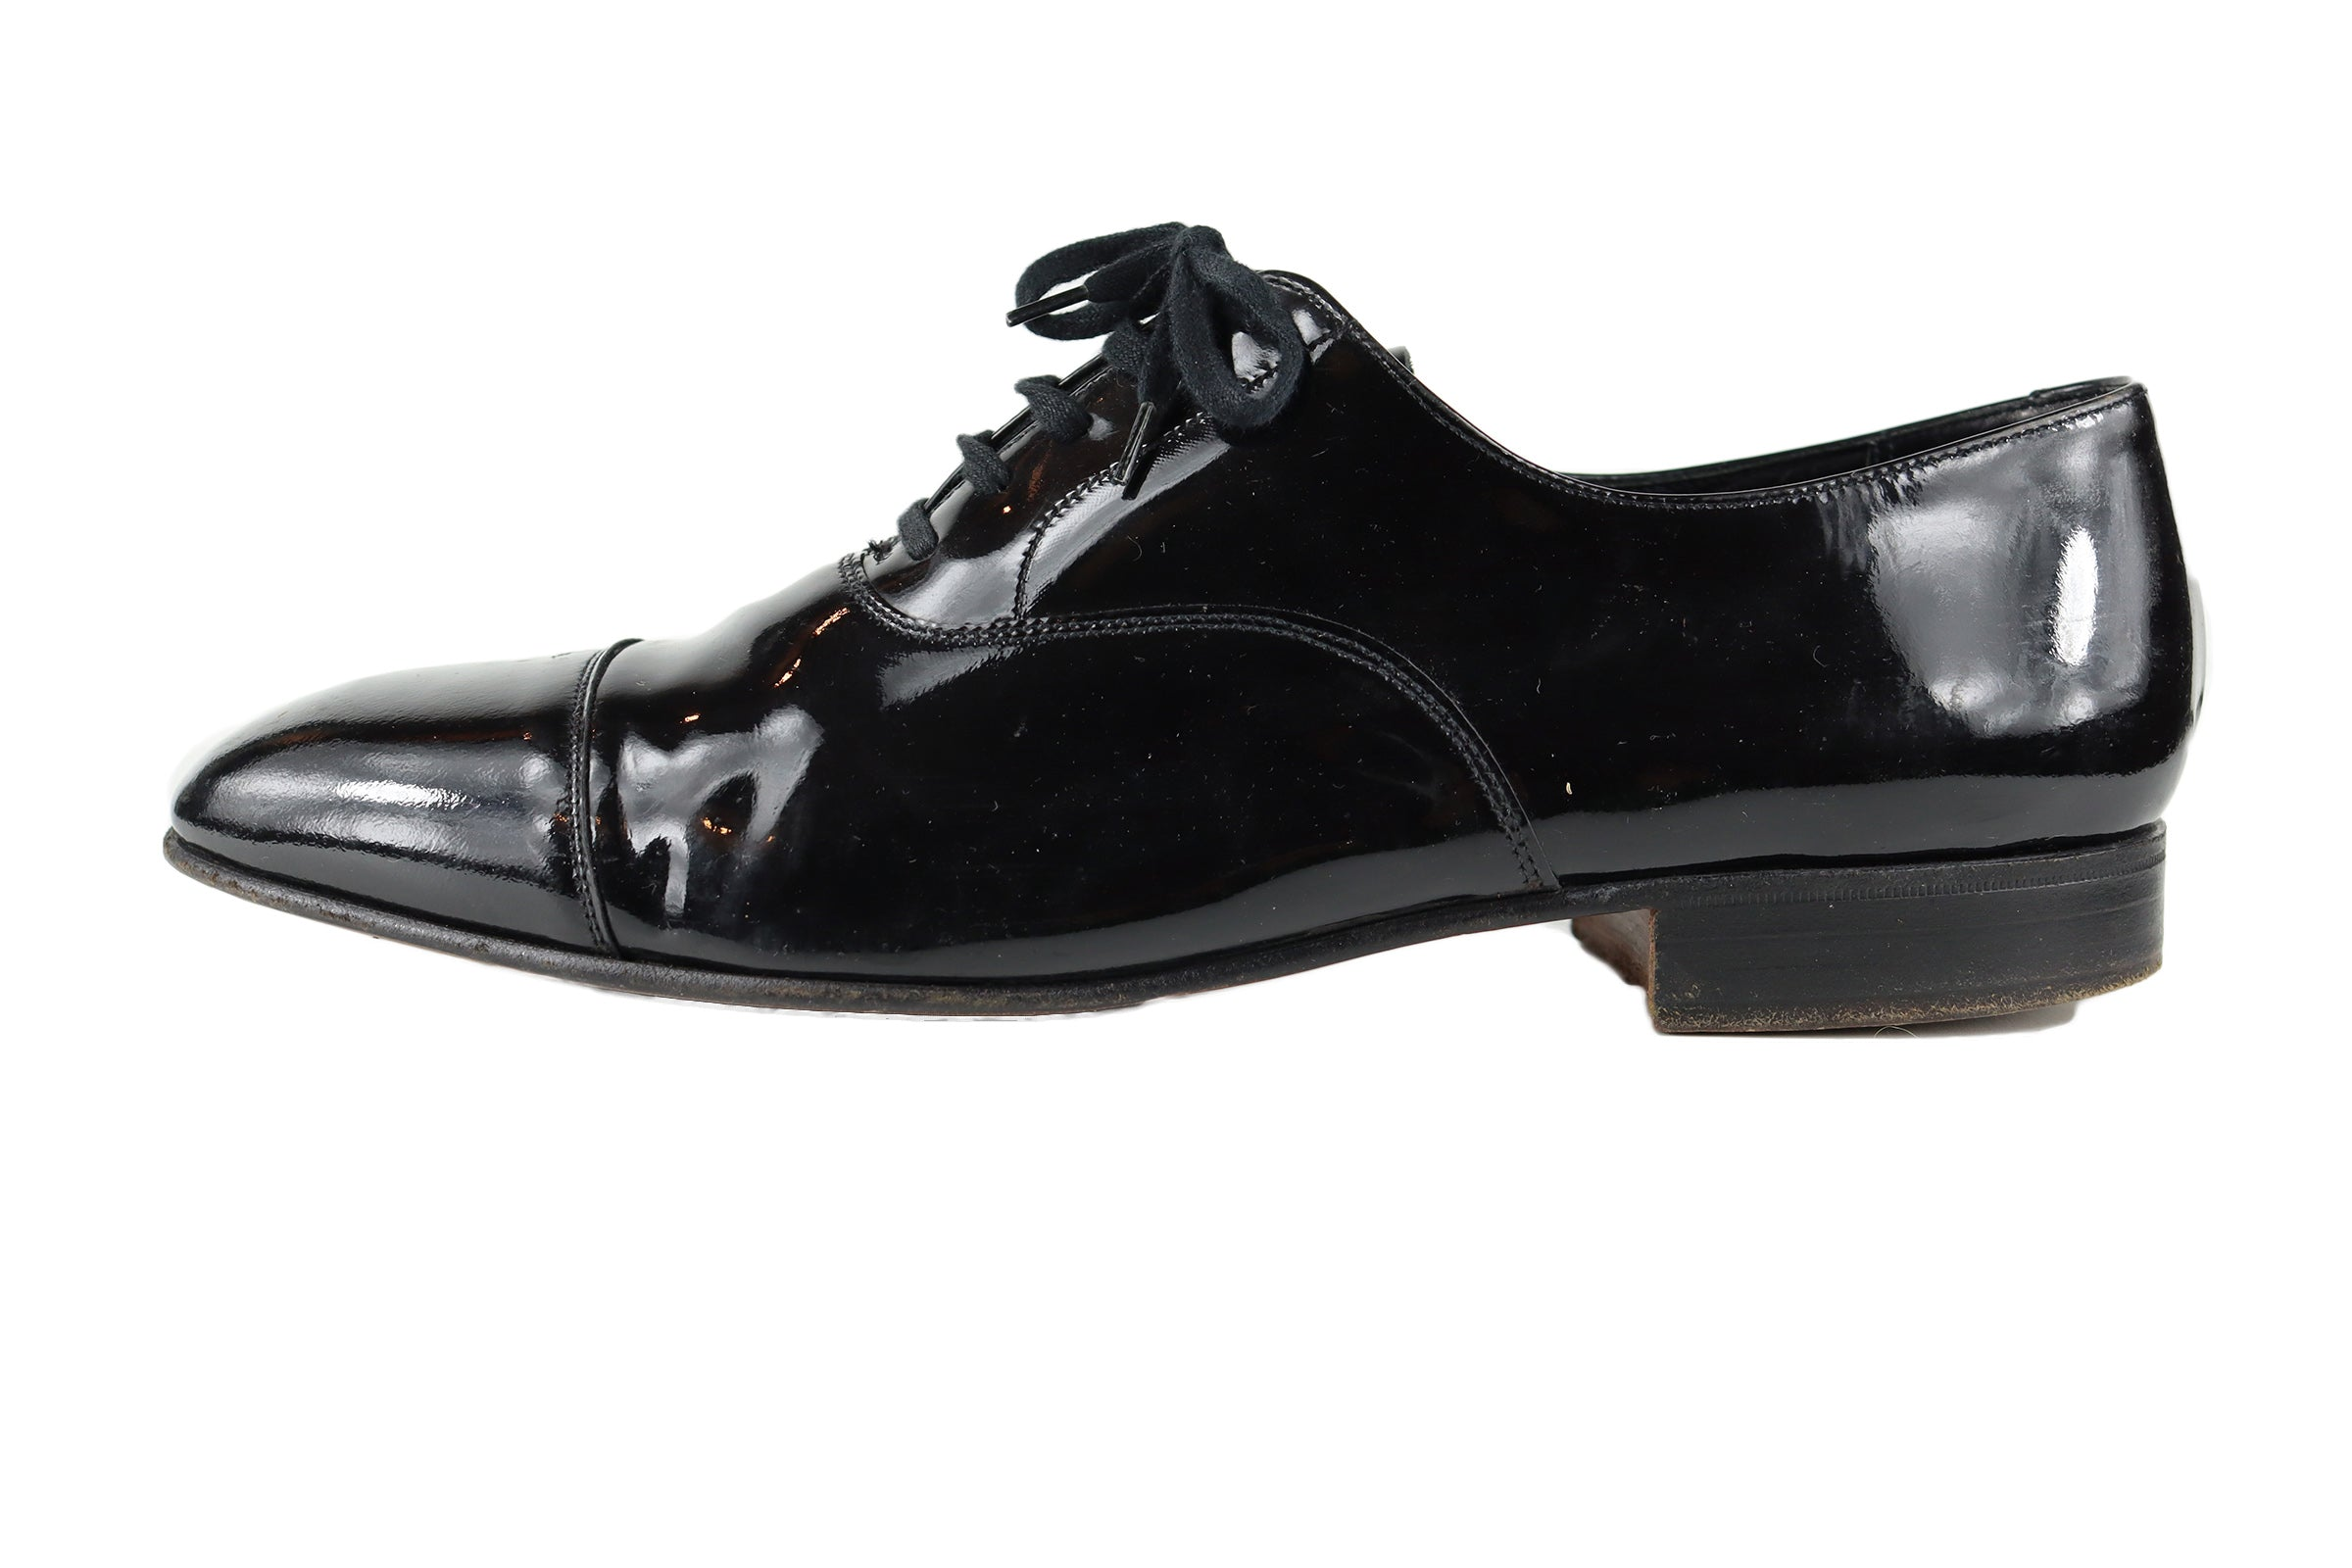 Crockett & Jones Black Patent Leather Oxford Men's Shoes Size 44 (EU) 10 (UK)